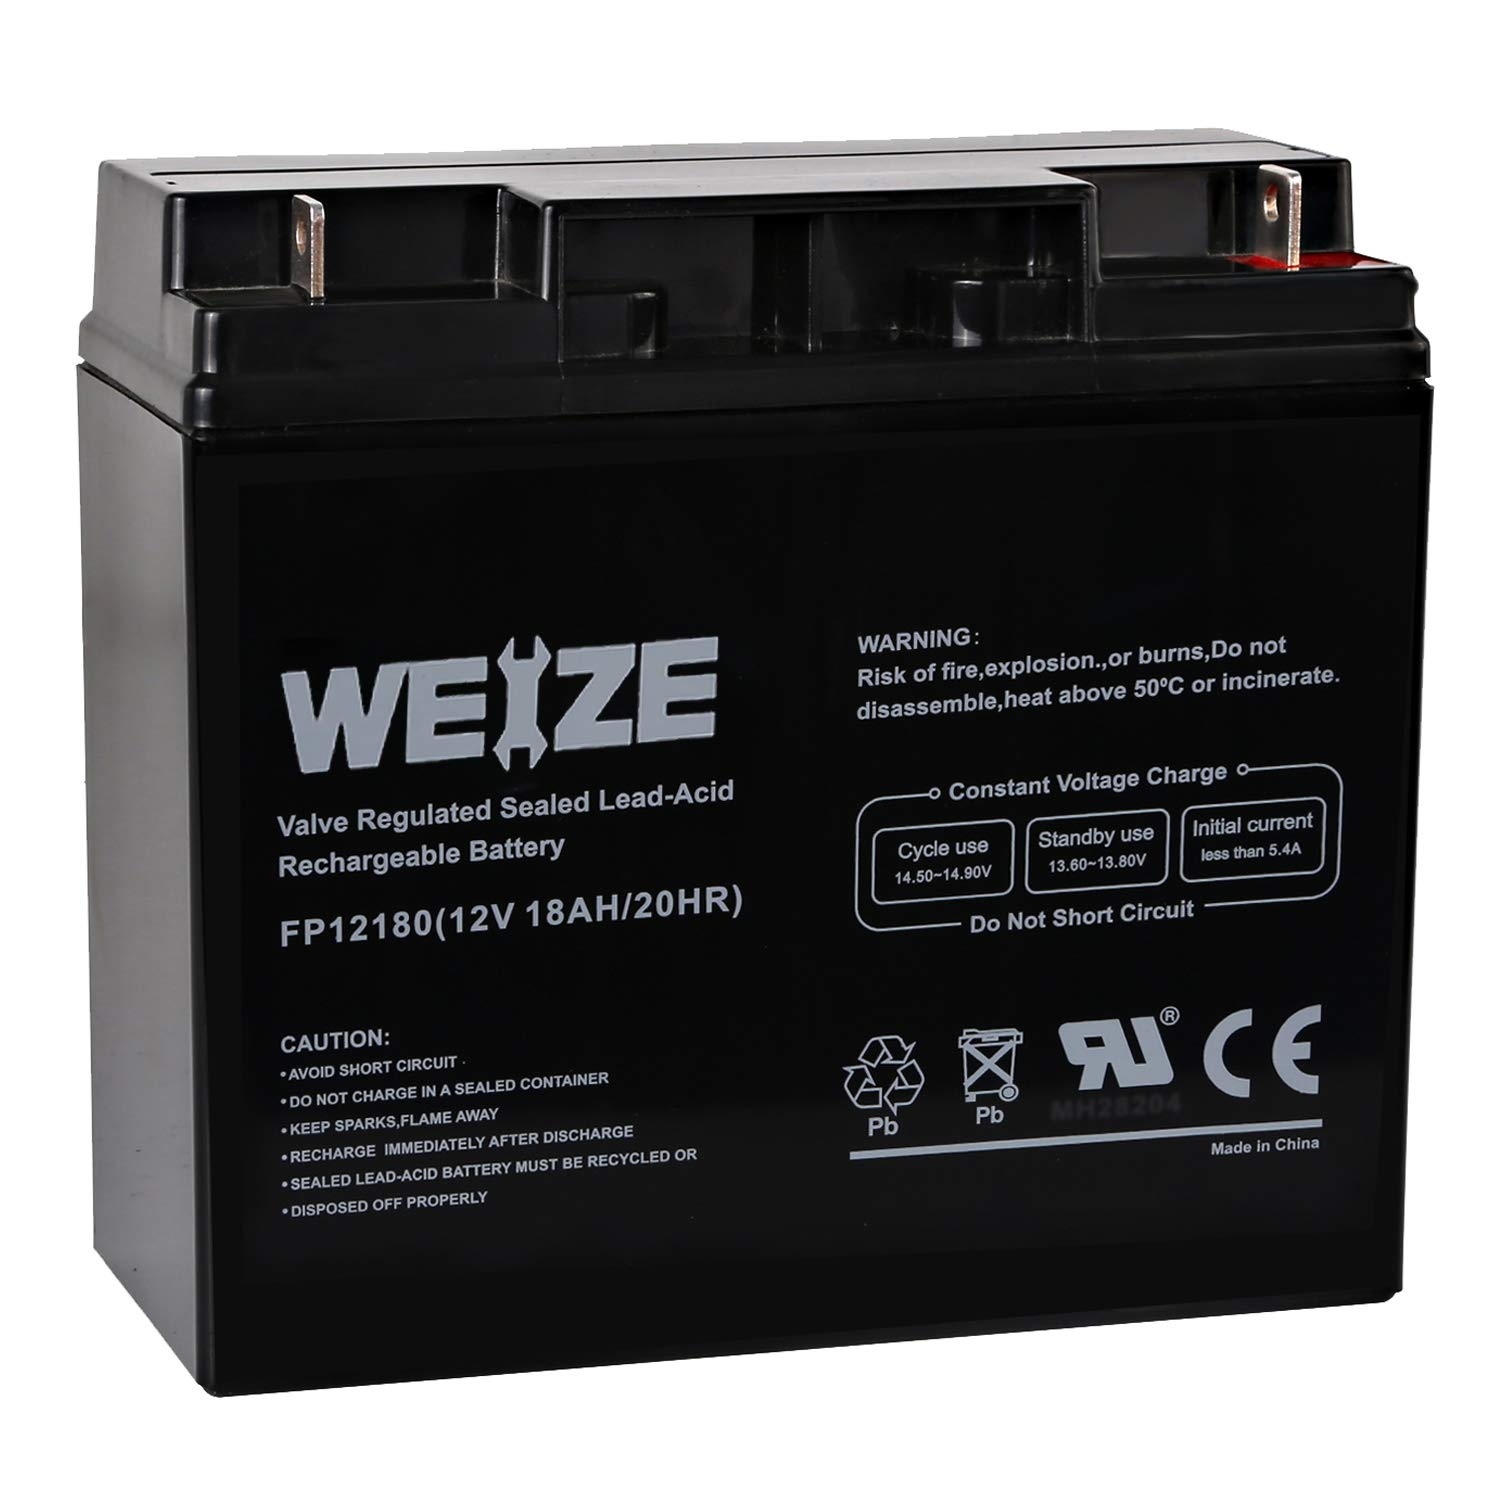 Weize 12V 18AH Battery Sealed Lead Acid Rechargeable SLA AGM Batteries Replaces UB12180 FM12180 6fm18, General Use by WEIZE